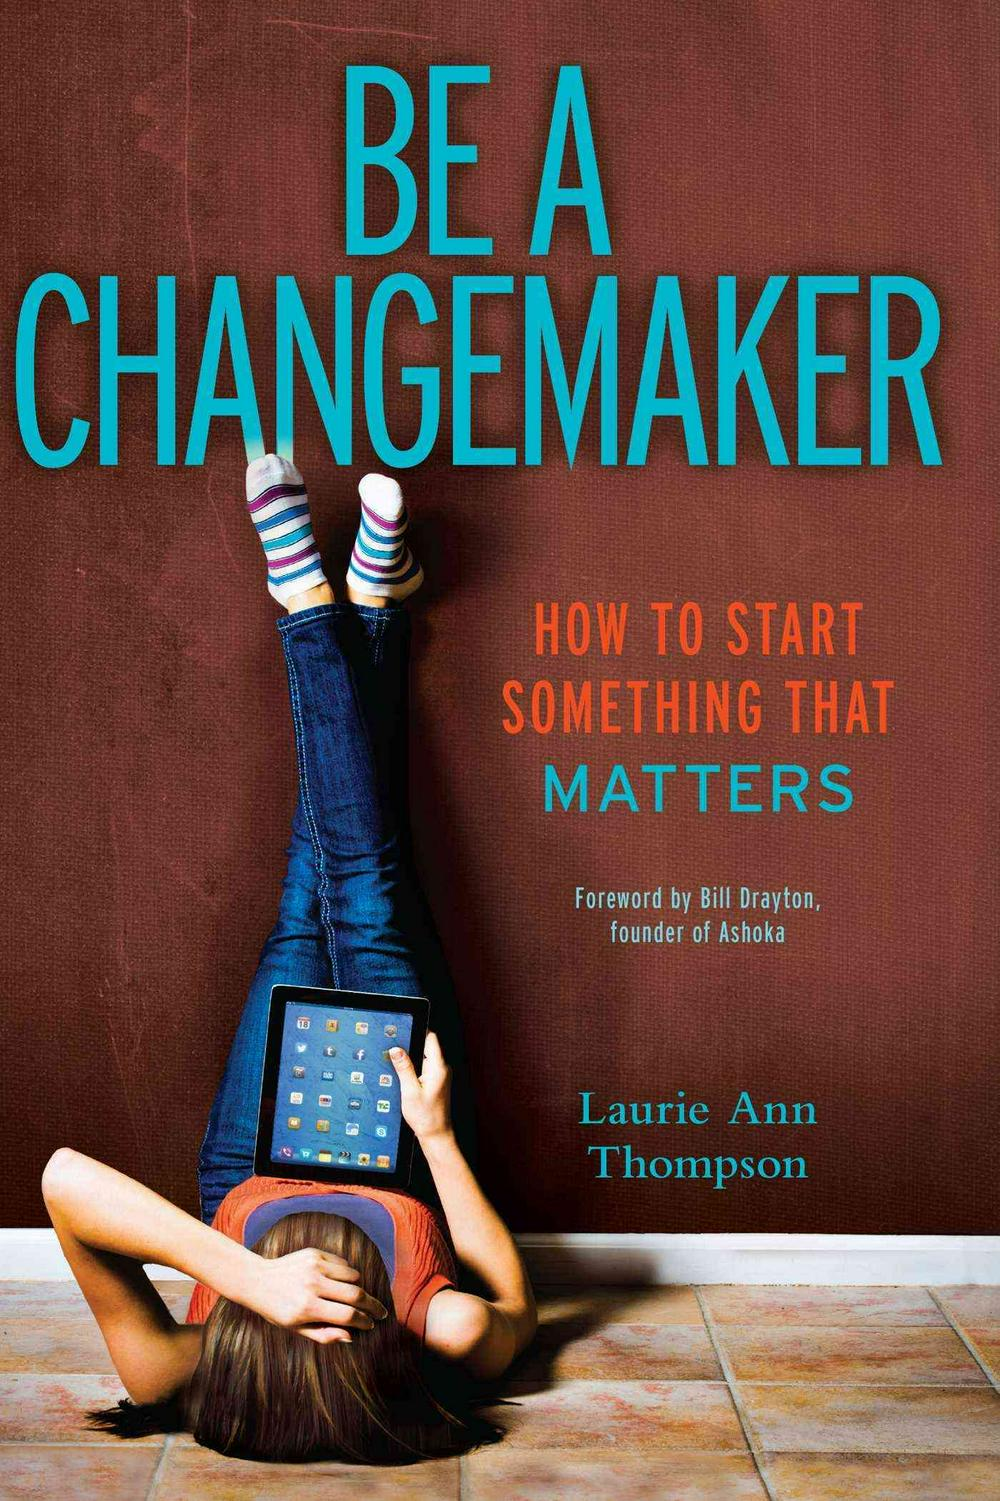 Be a Changemaker: How to Start Something That Matters by Laurie Ann Thompson, ISBN: 9781582704647